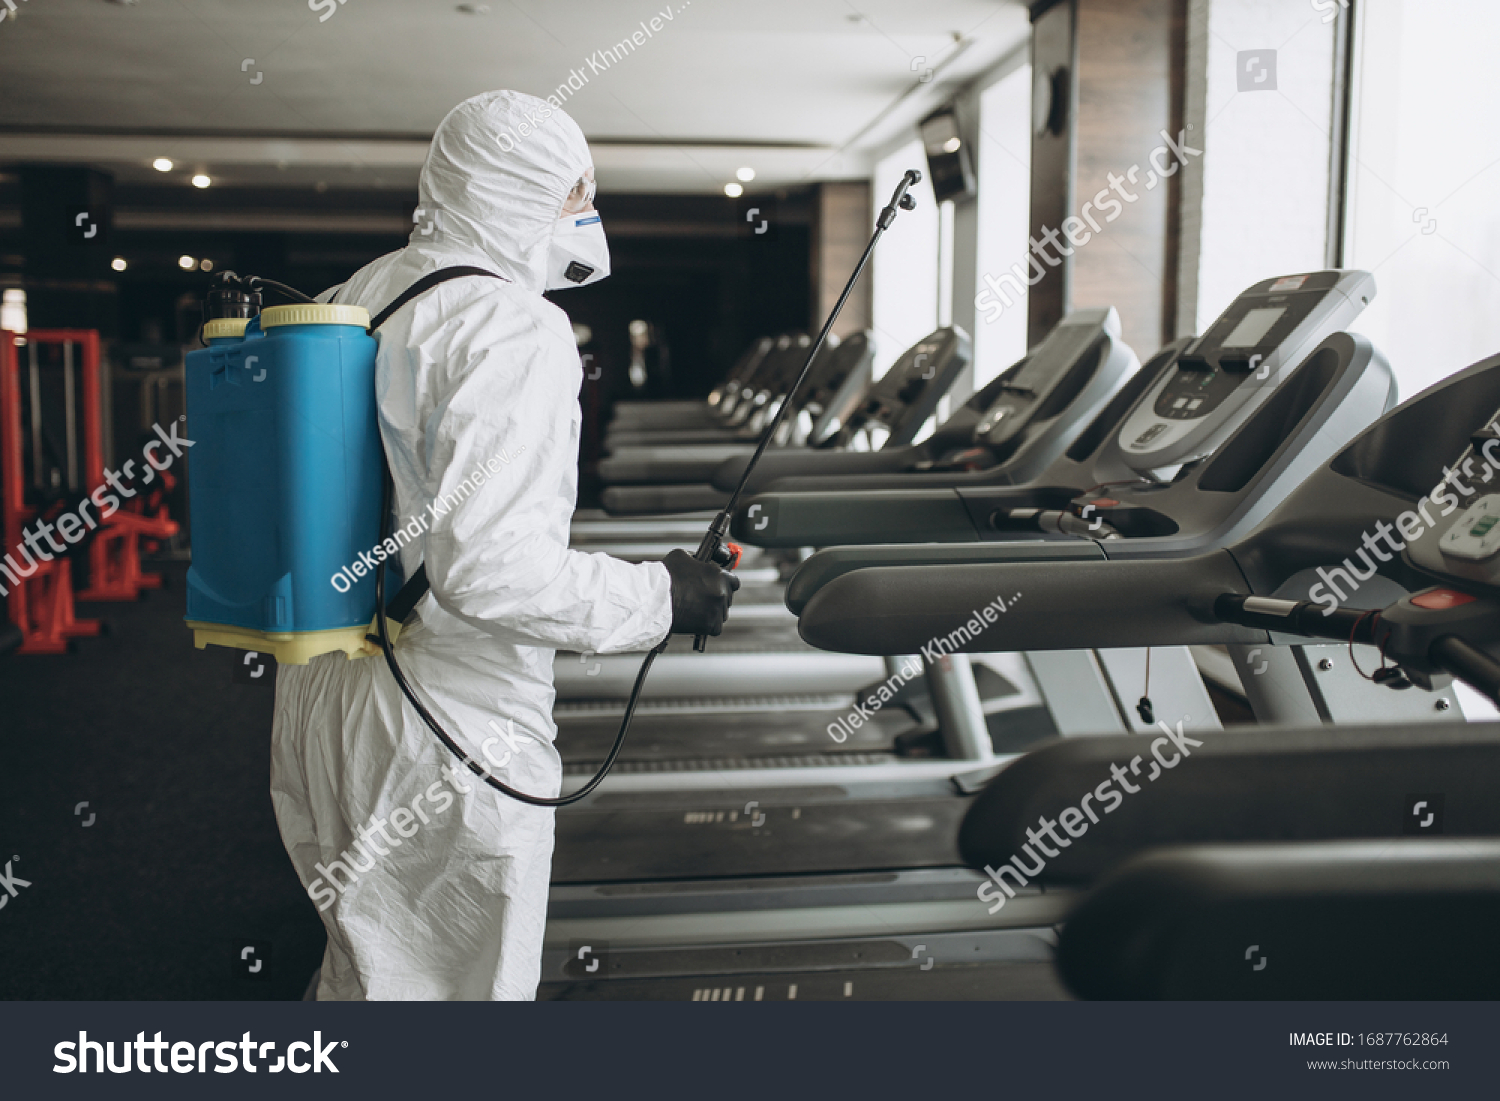 Cleaning and Disinfection in crowded places amid the coronavirus epidemic Gym cleaning and disinfection Infection prevention and control of epidemic. Protective suit and mask and spray bag #1687762864